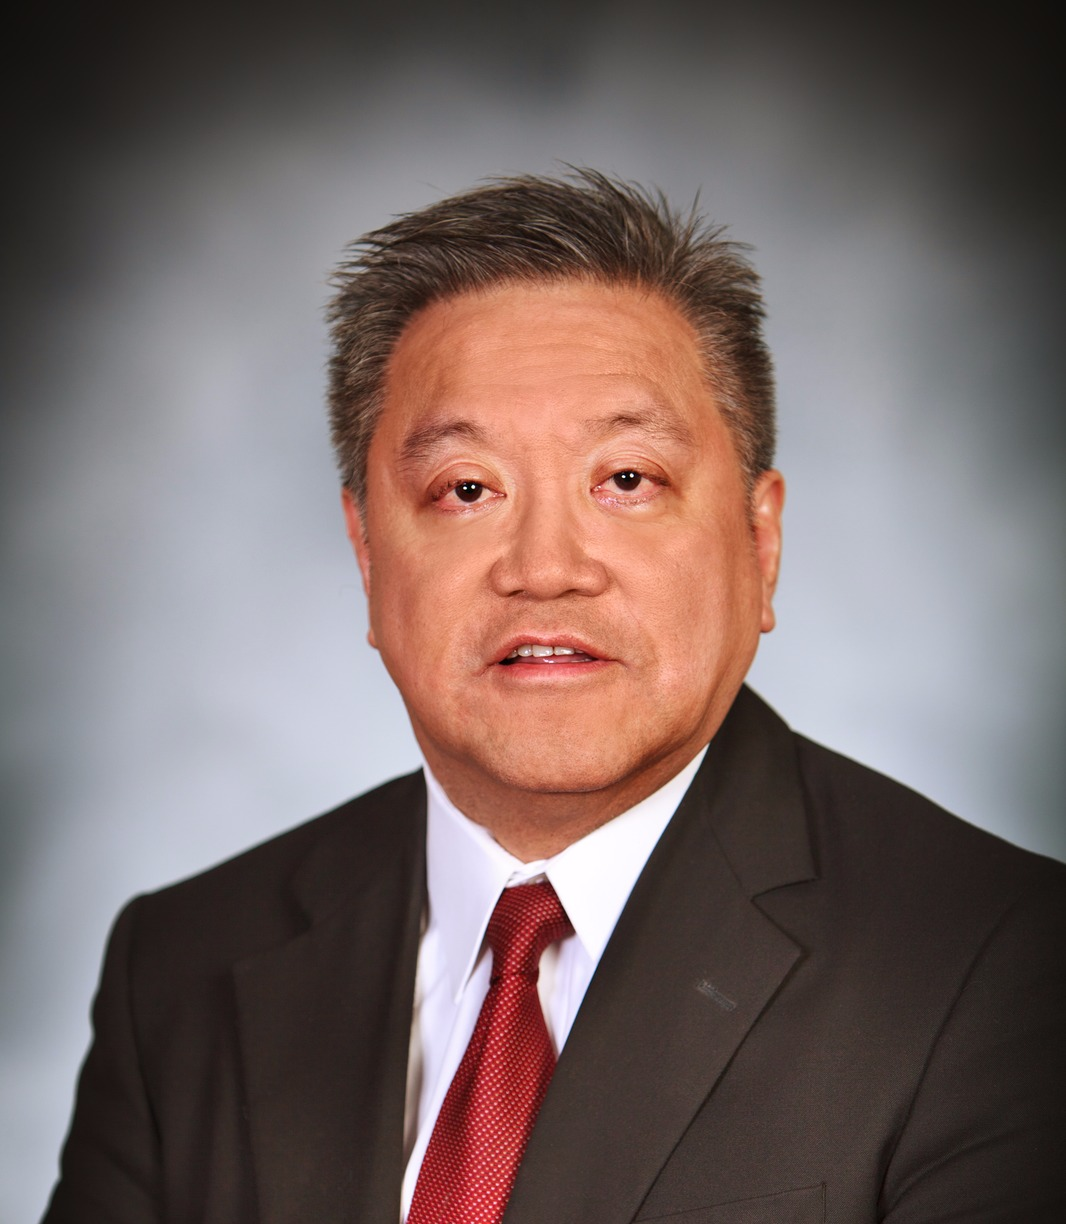 Broadcom CEO and President Hock Tan profile photos